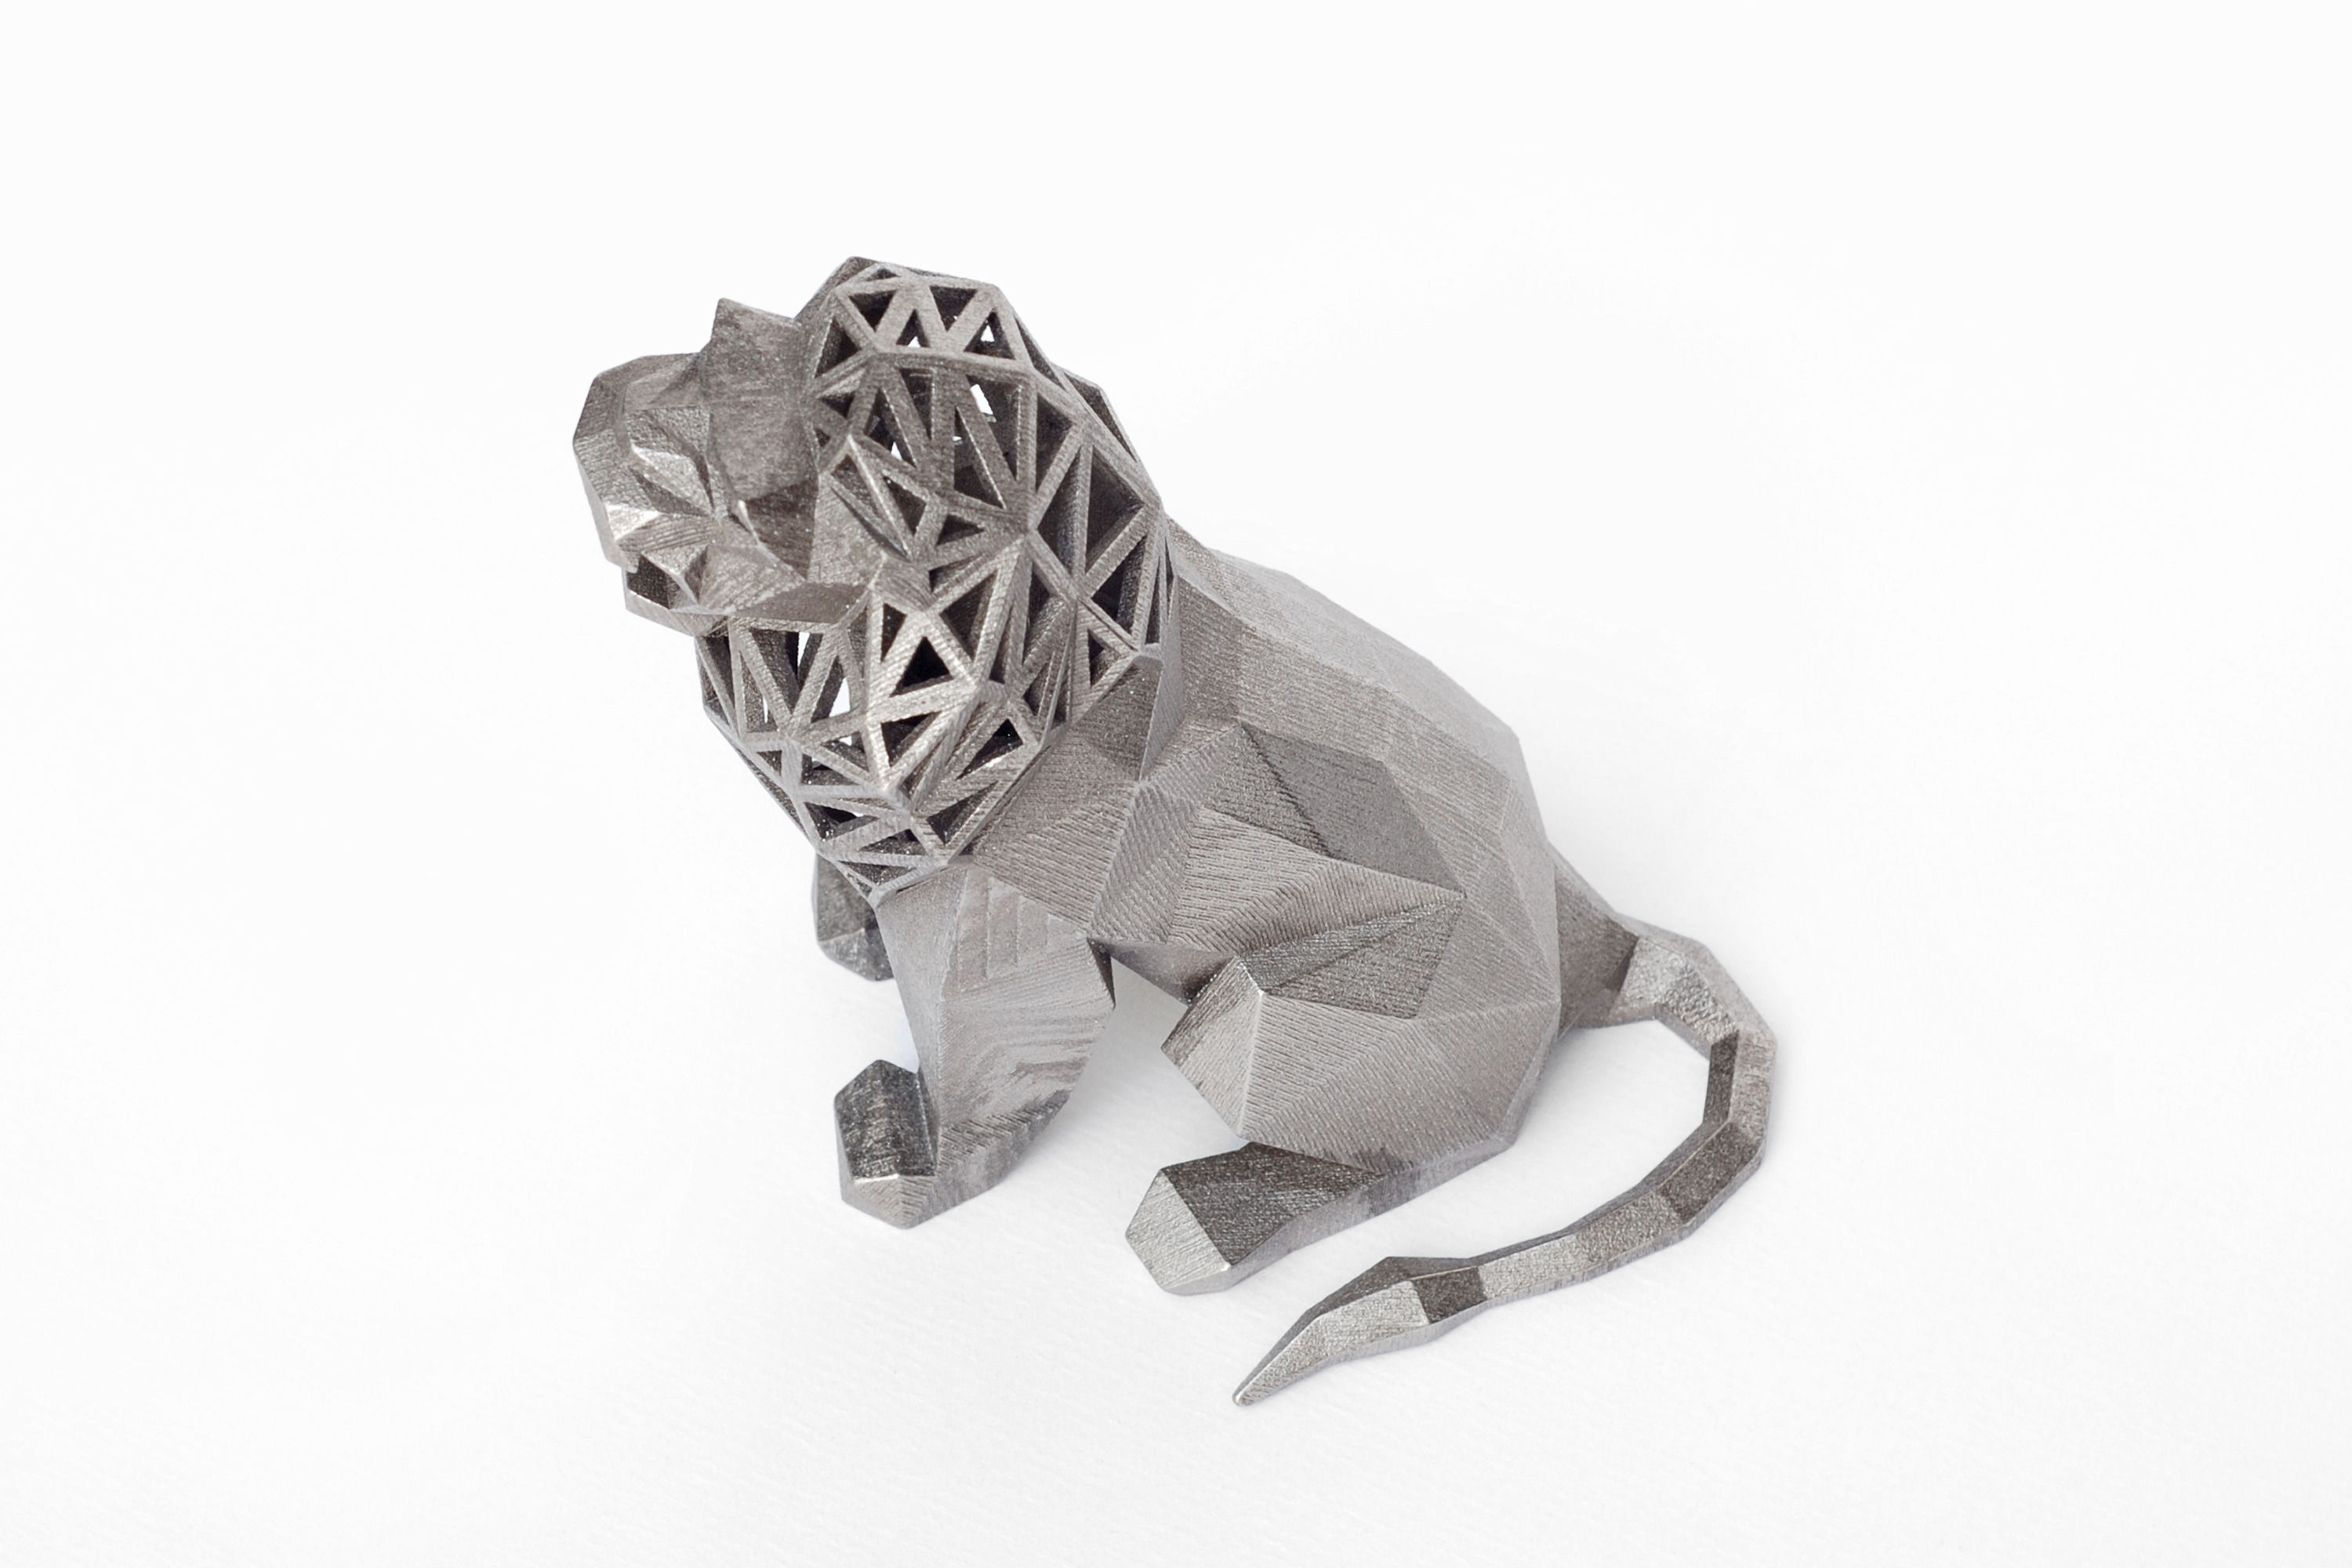 roaring lion 3d model 3d printable obj stl cgtrader com online 3d interior design online 3d interior design tools